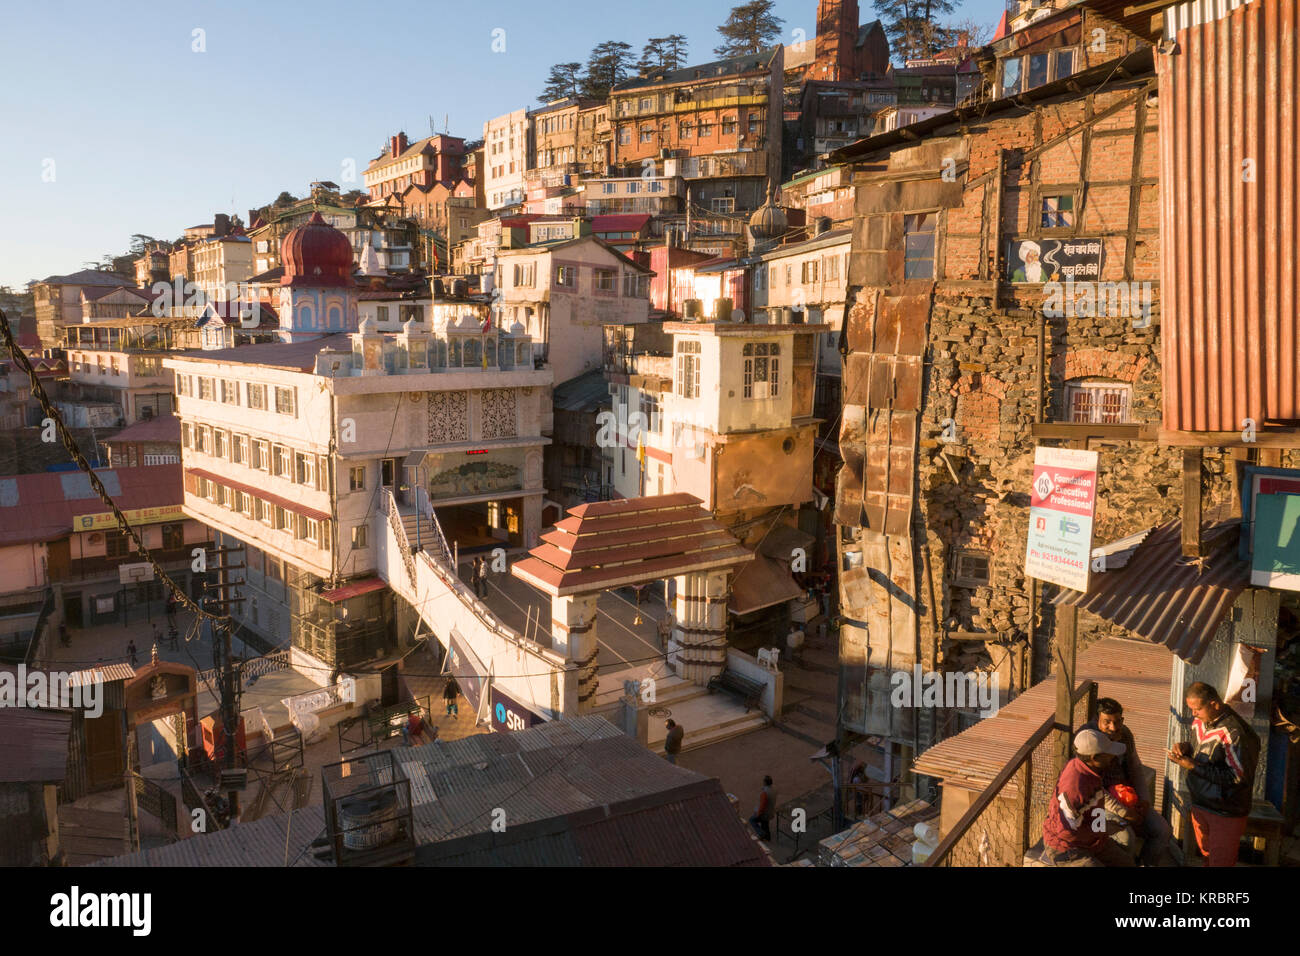 Old colonial buildings of Shimla, Himachal Pradesh, India - Stock Image